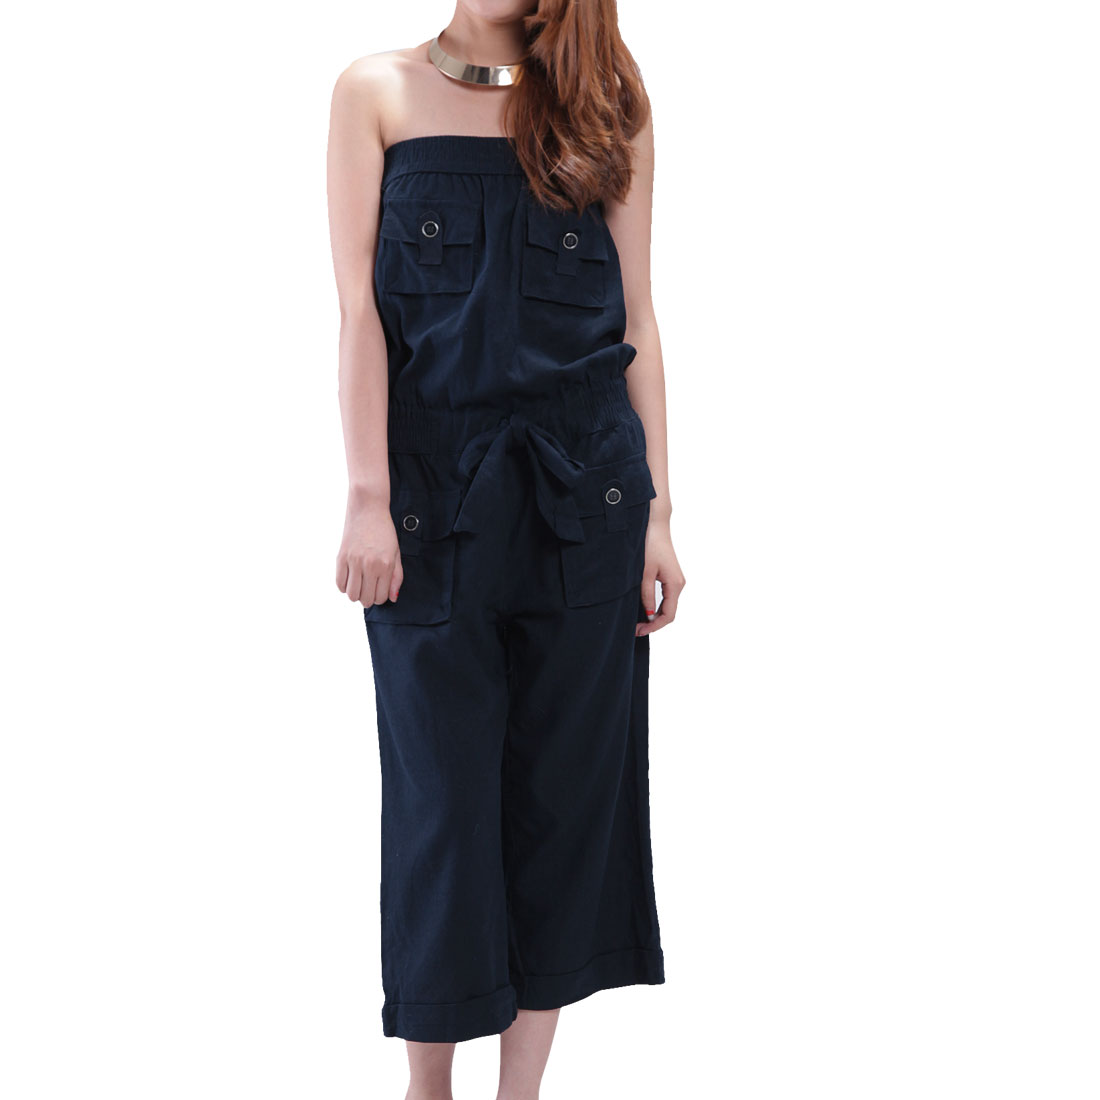 Navy Blue Elastic Bust Drawstring Waist Tube Jumpsuit S for Women